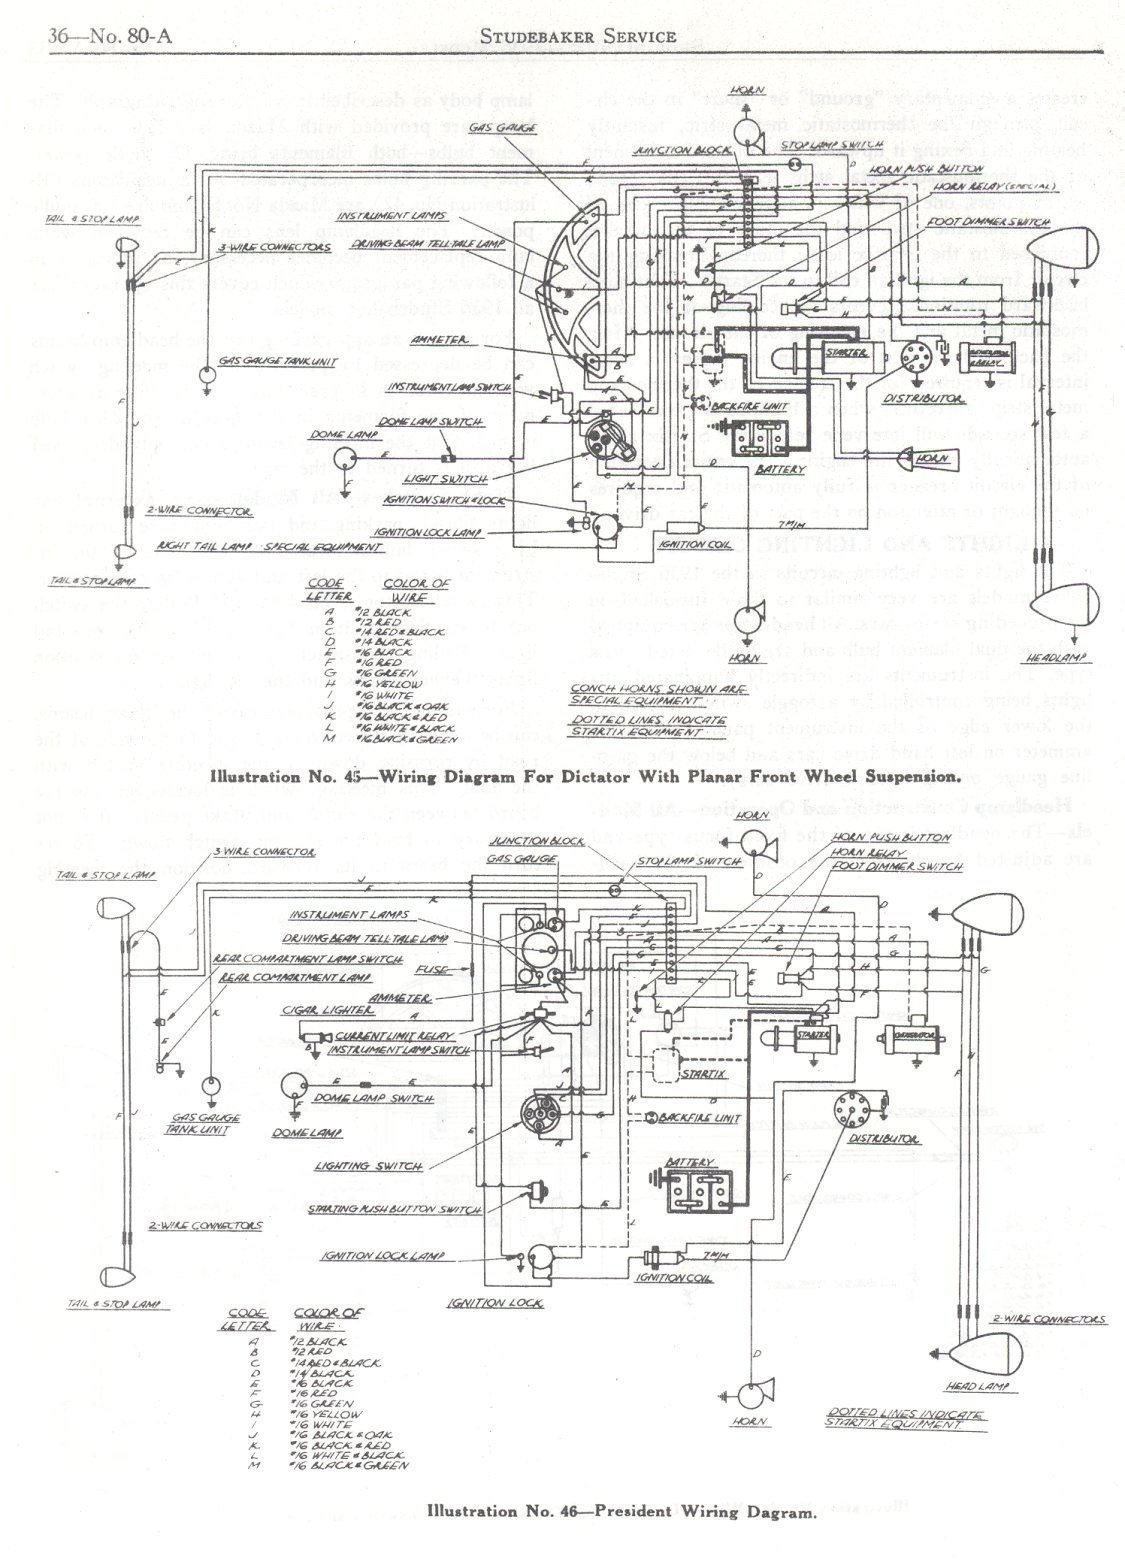 24 And 36 Wiring Diagram